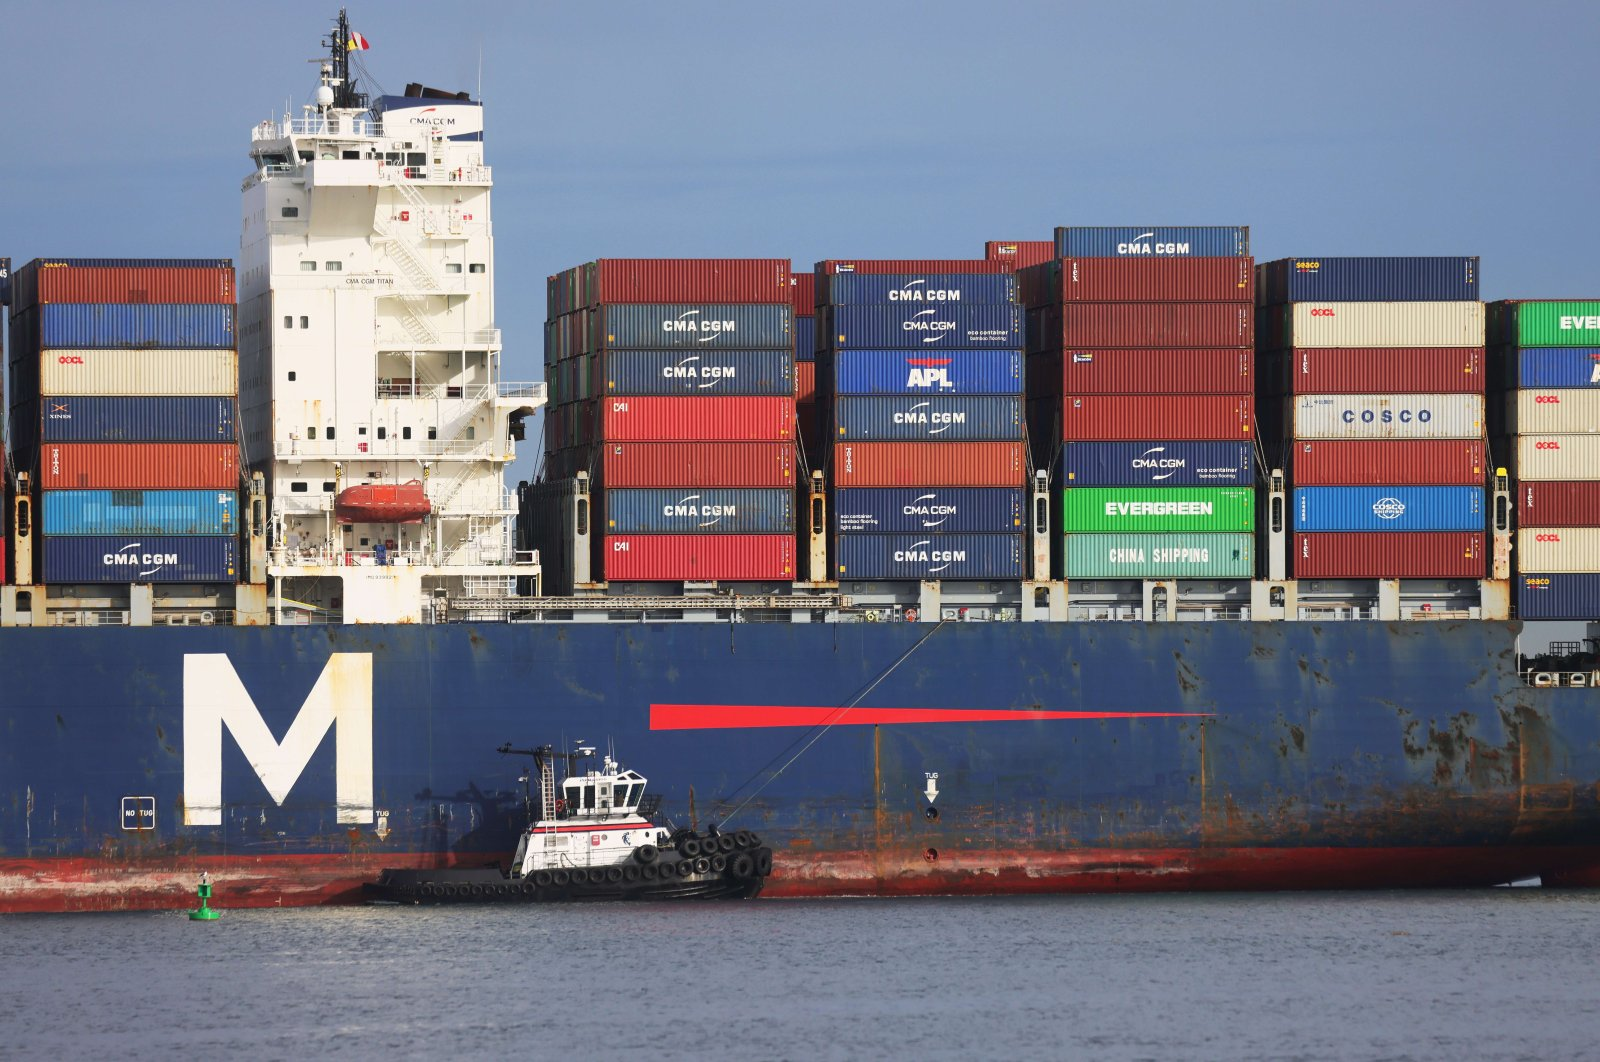 A container ship enters the Port of Los Angeles, in San Pedro, California, U.S., Feb. 1, 2021. (AFP Photo)